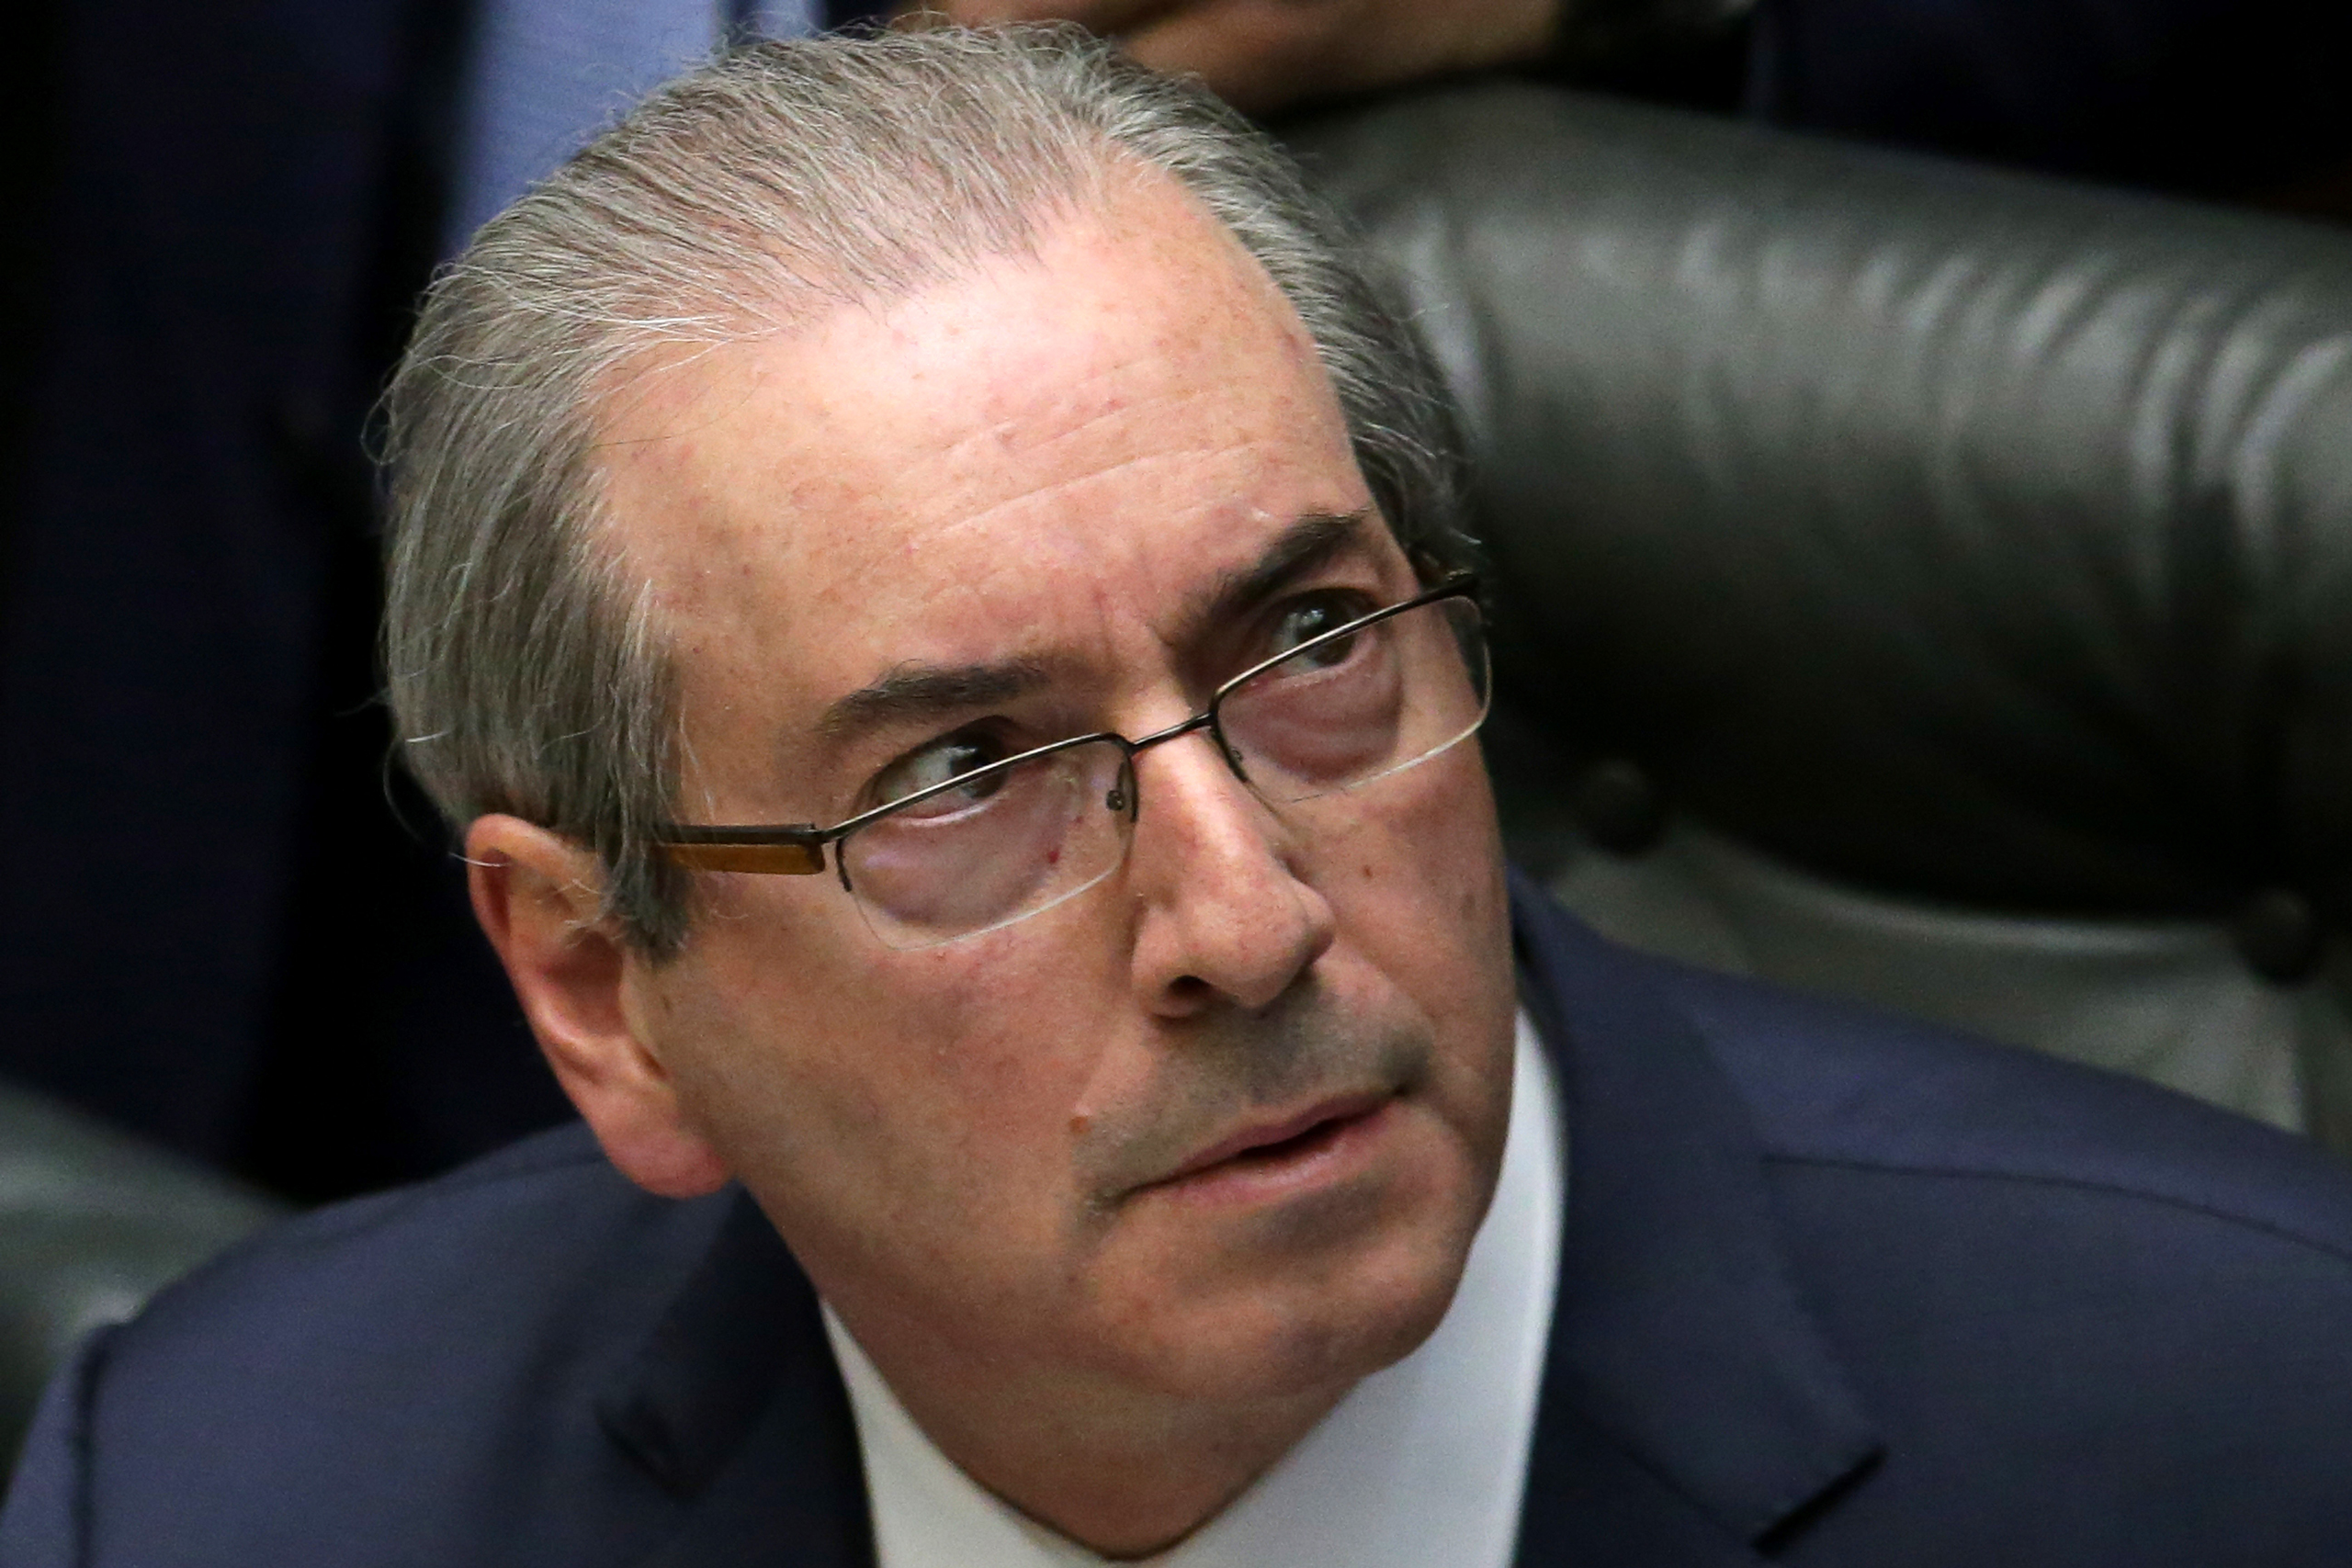 Brazilian House Speaker Eduardo Cunha attends a debate on whether or not to impeach the president, at the Chamber of Deputies in Brasilia on Apr. 15, 2016.